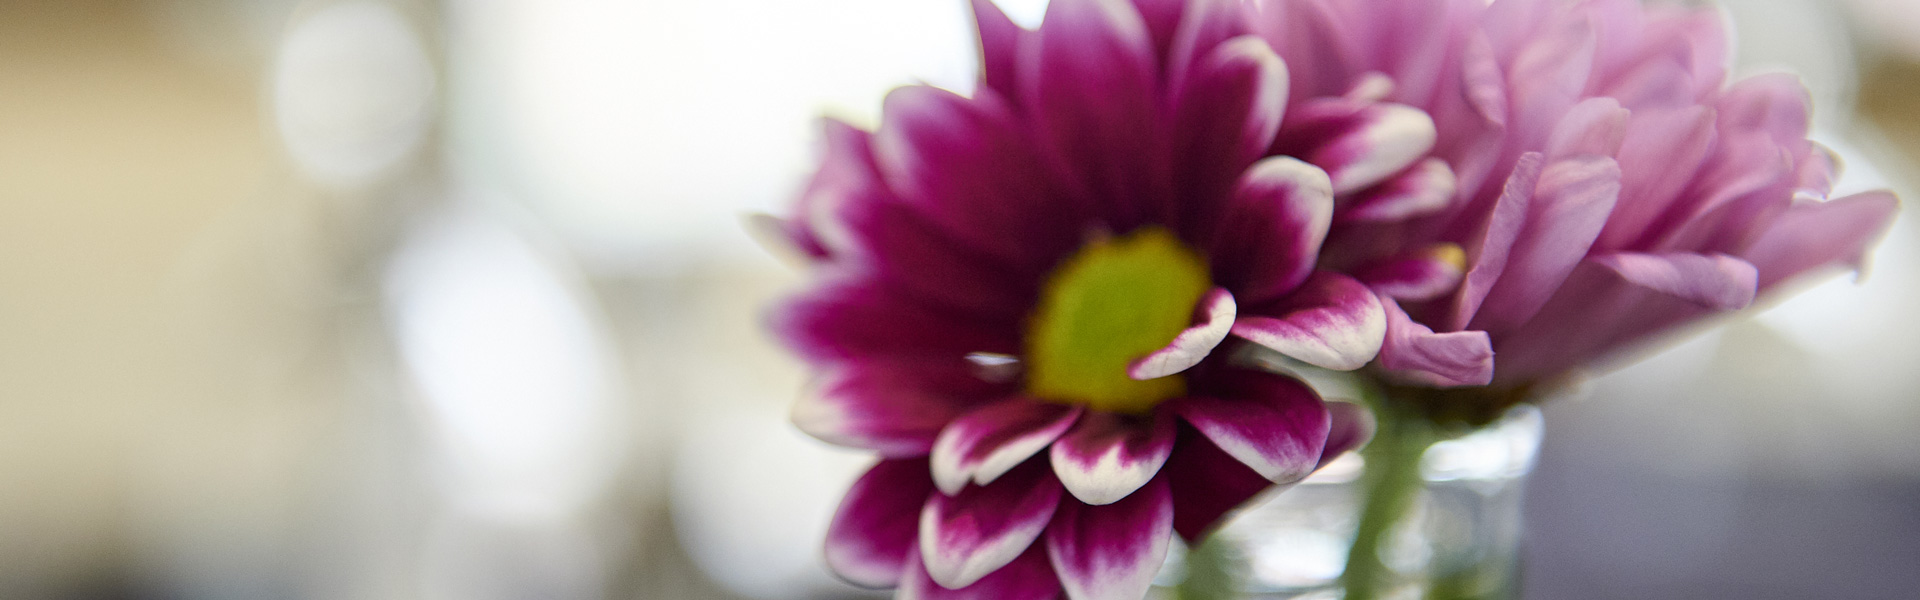 A purple and white flower